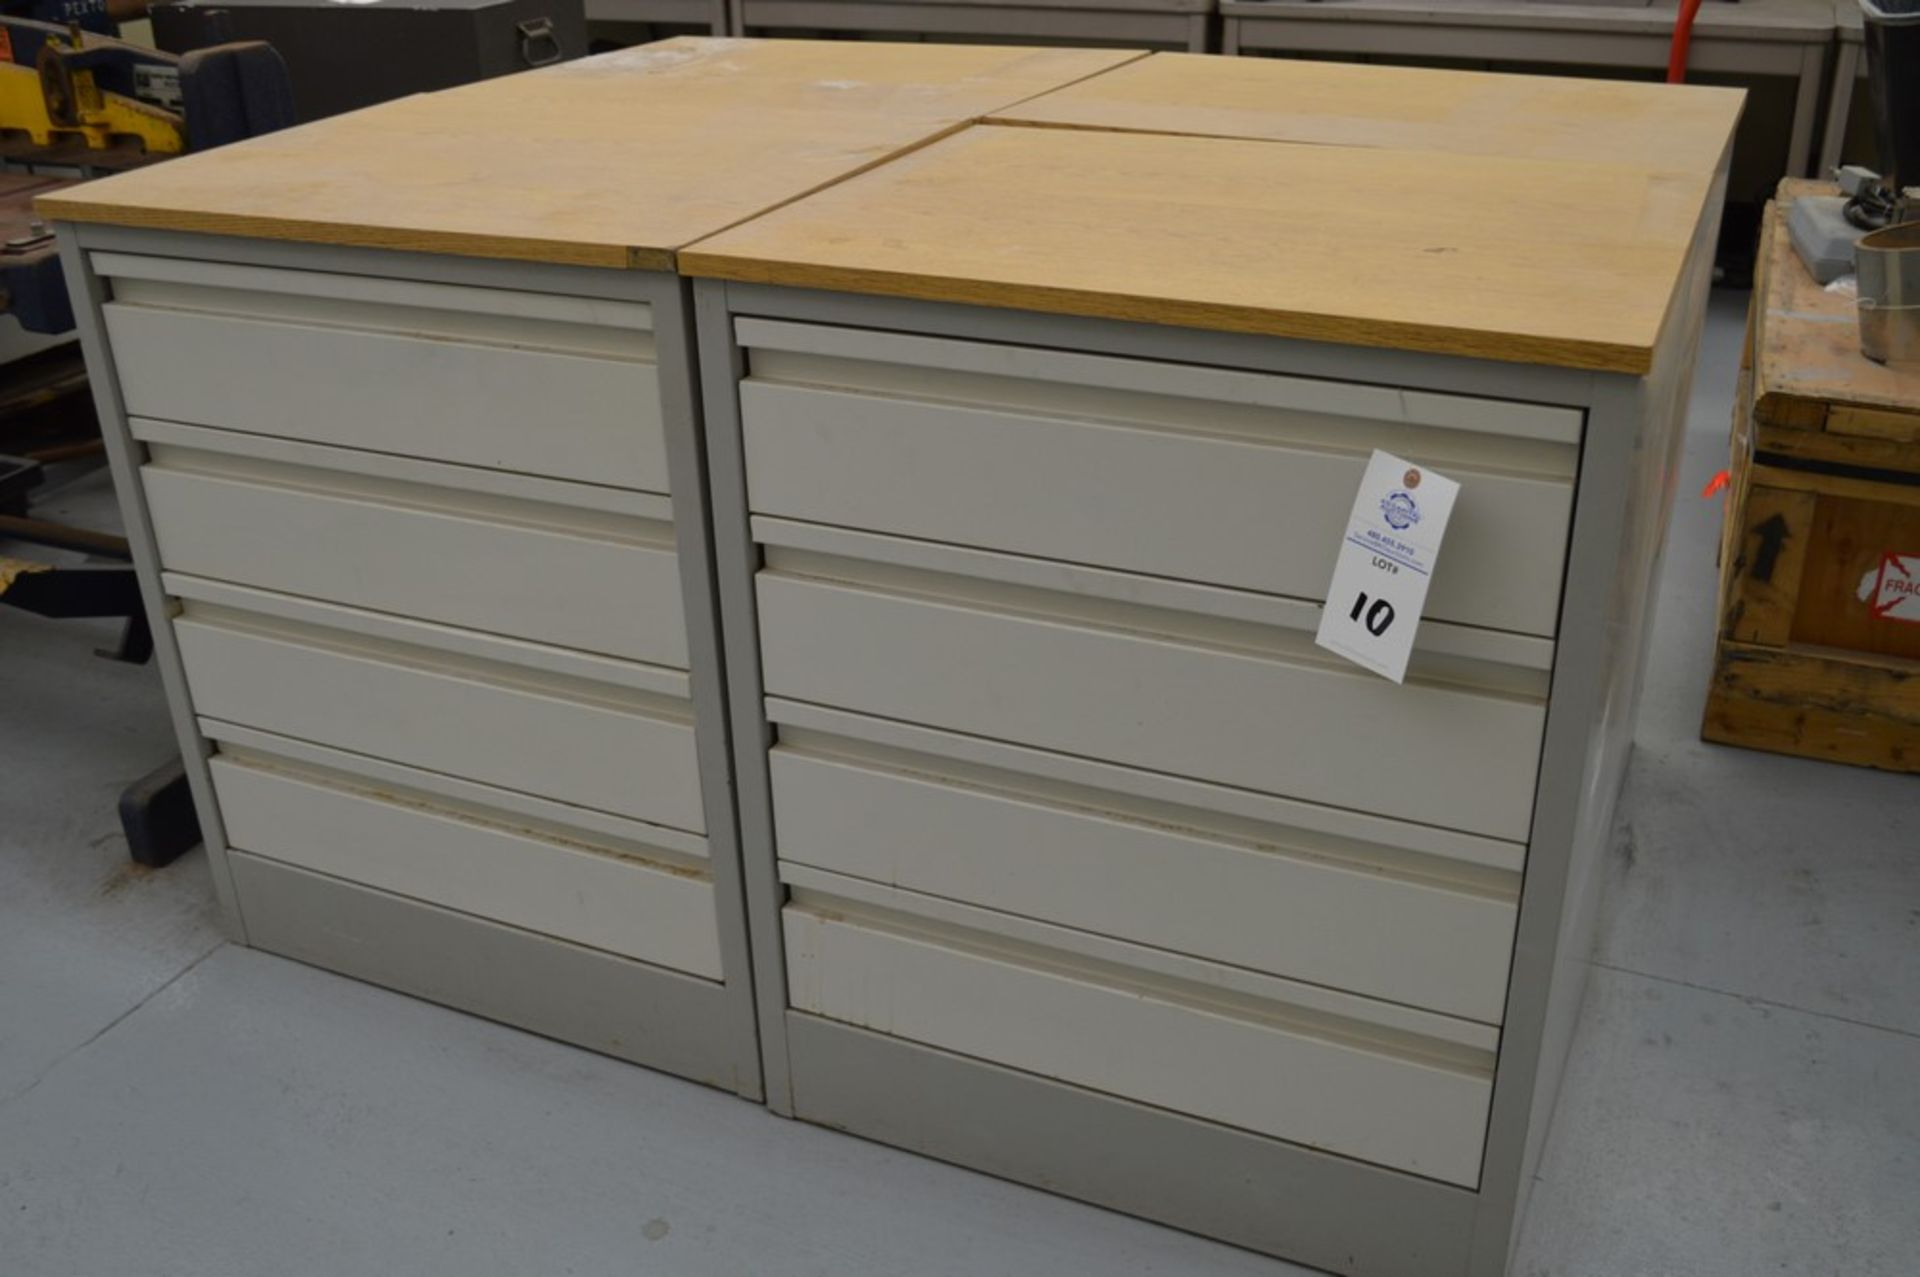 """(3) 4 Drawer Metal Cabinets with wood finished formica tops, 24"""" x 30.5"""", 36.5"""" Tall - Image 5 of 5"""